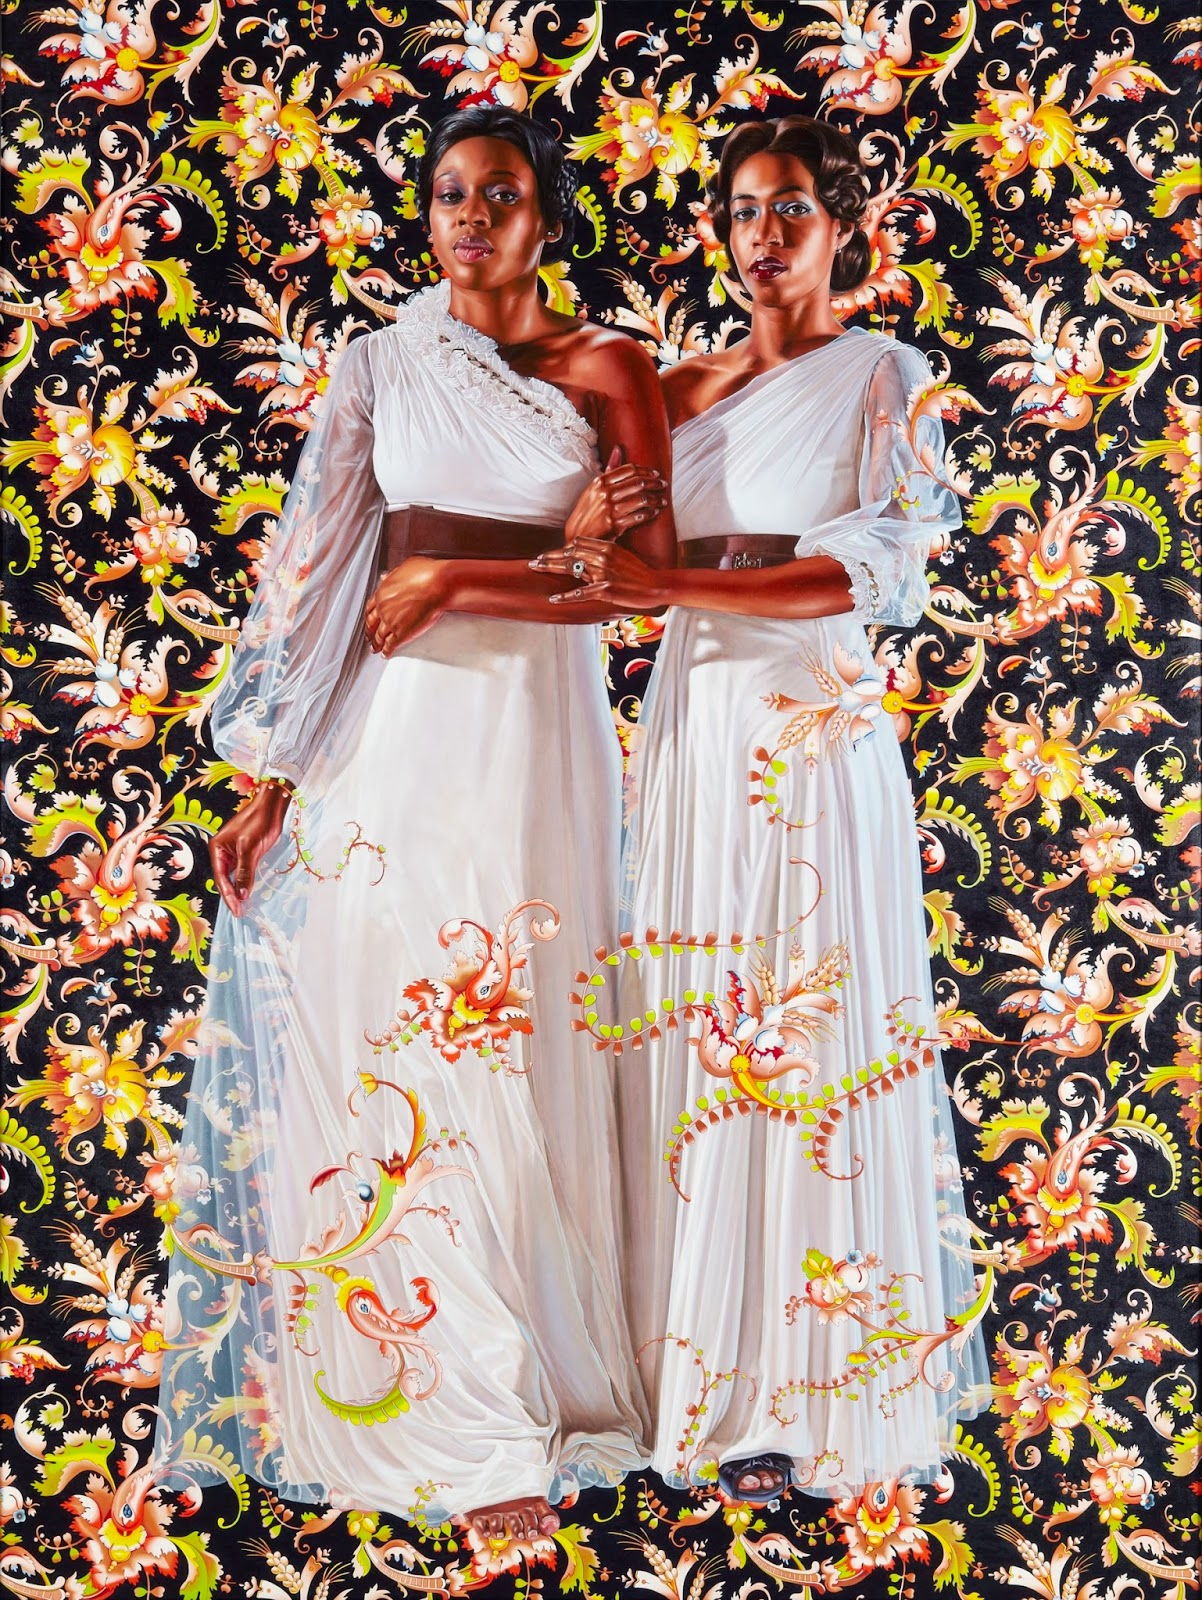 Black Art Project Select African American Art Exhibitions